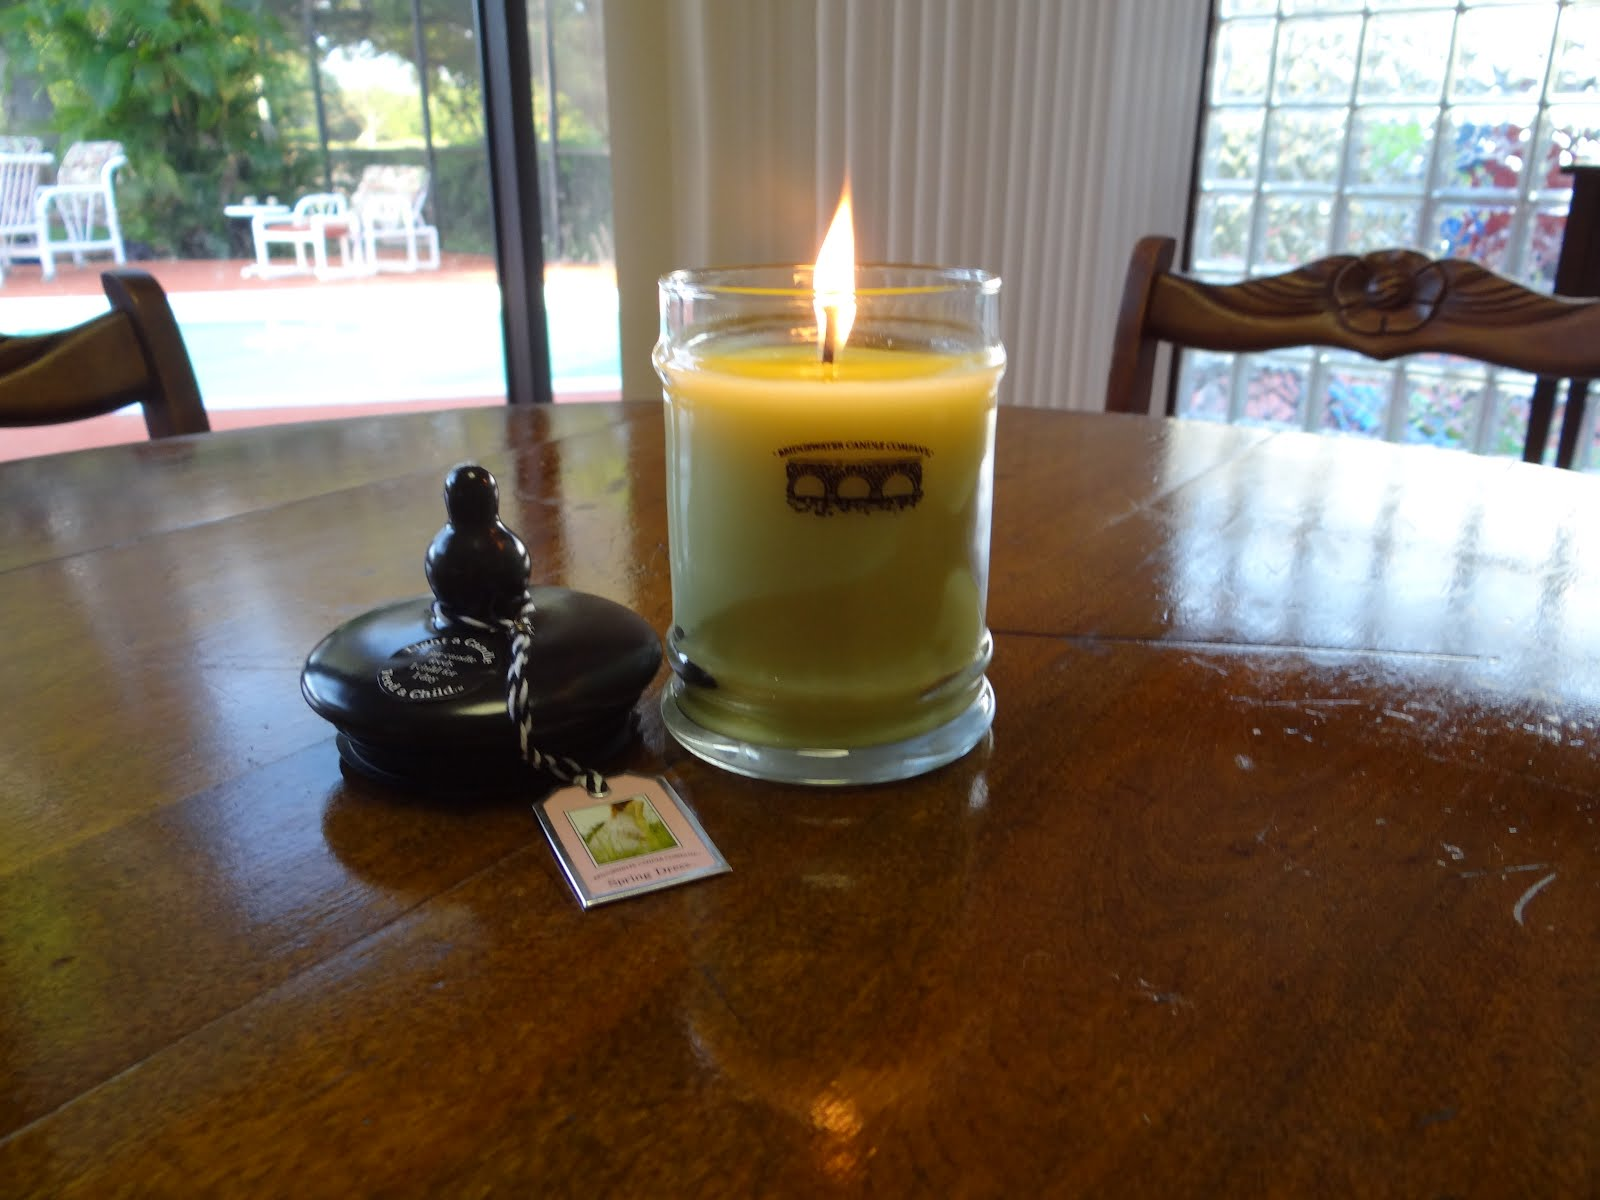 Bridgewater Candle Company Soy Candles!